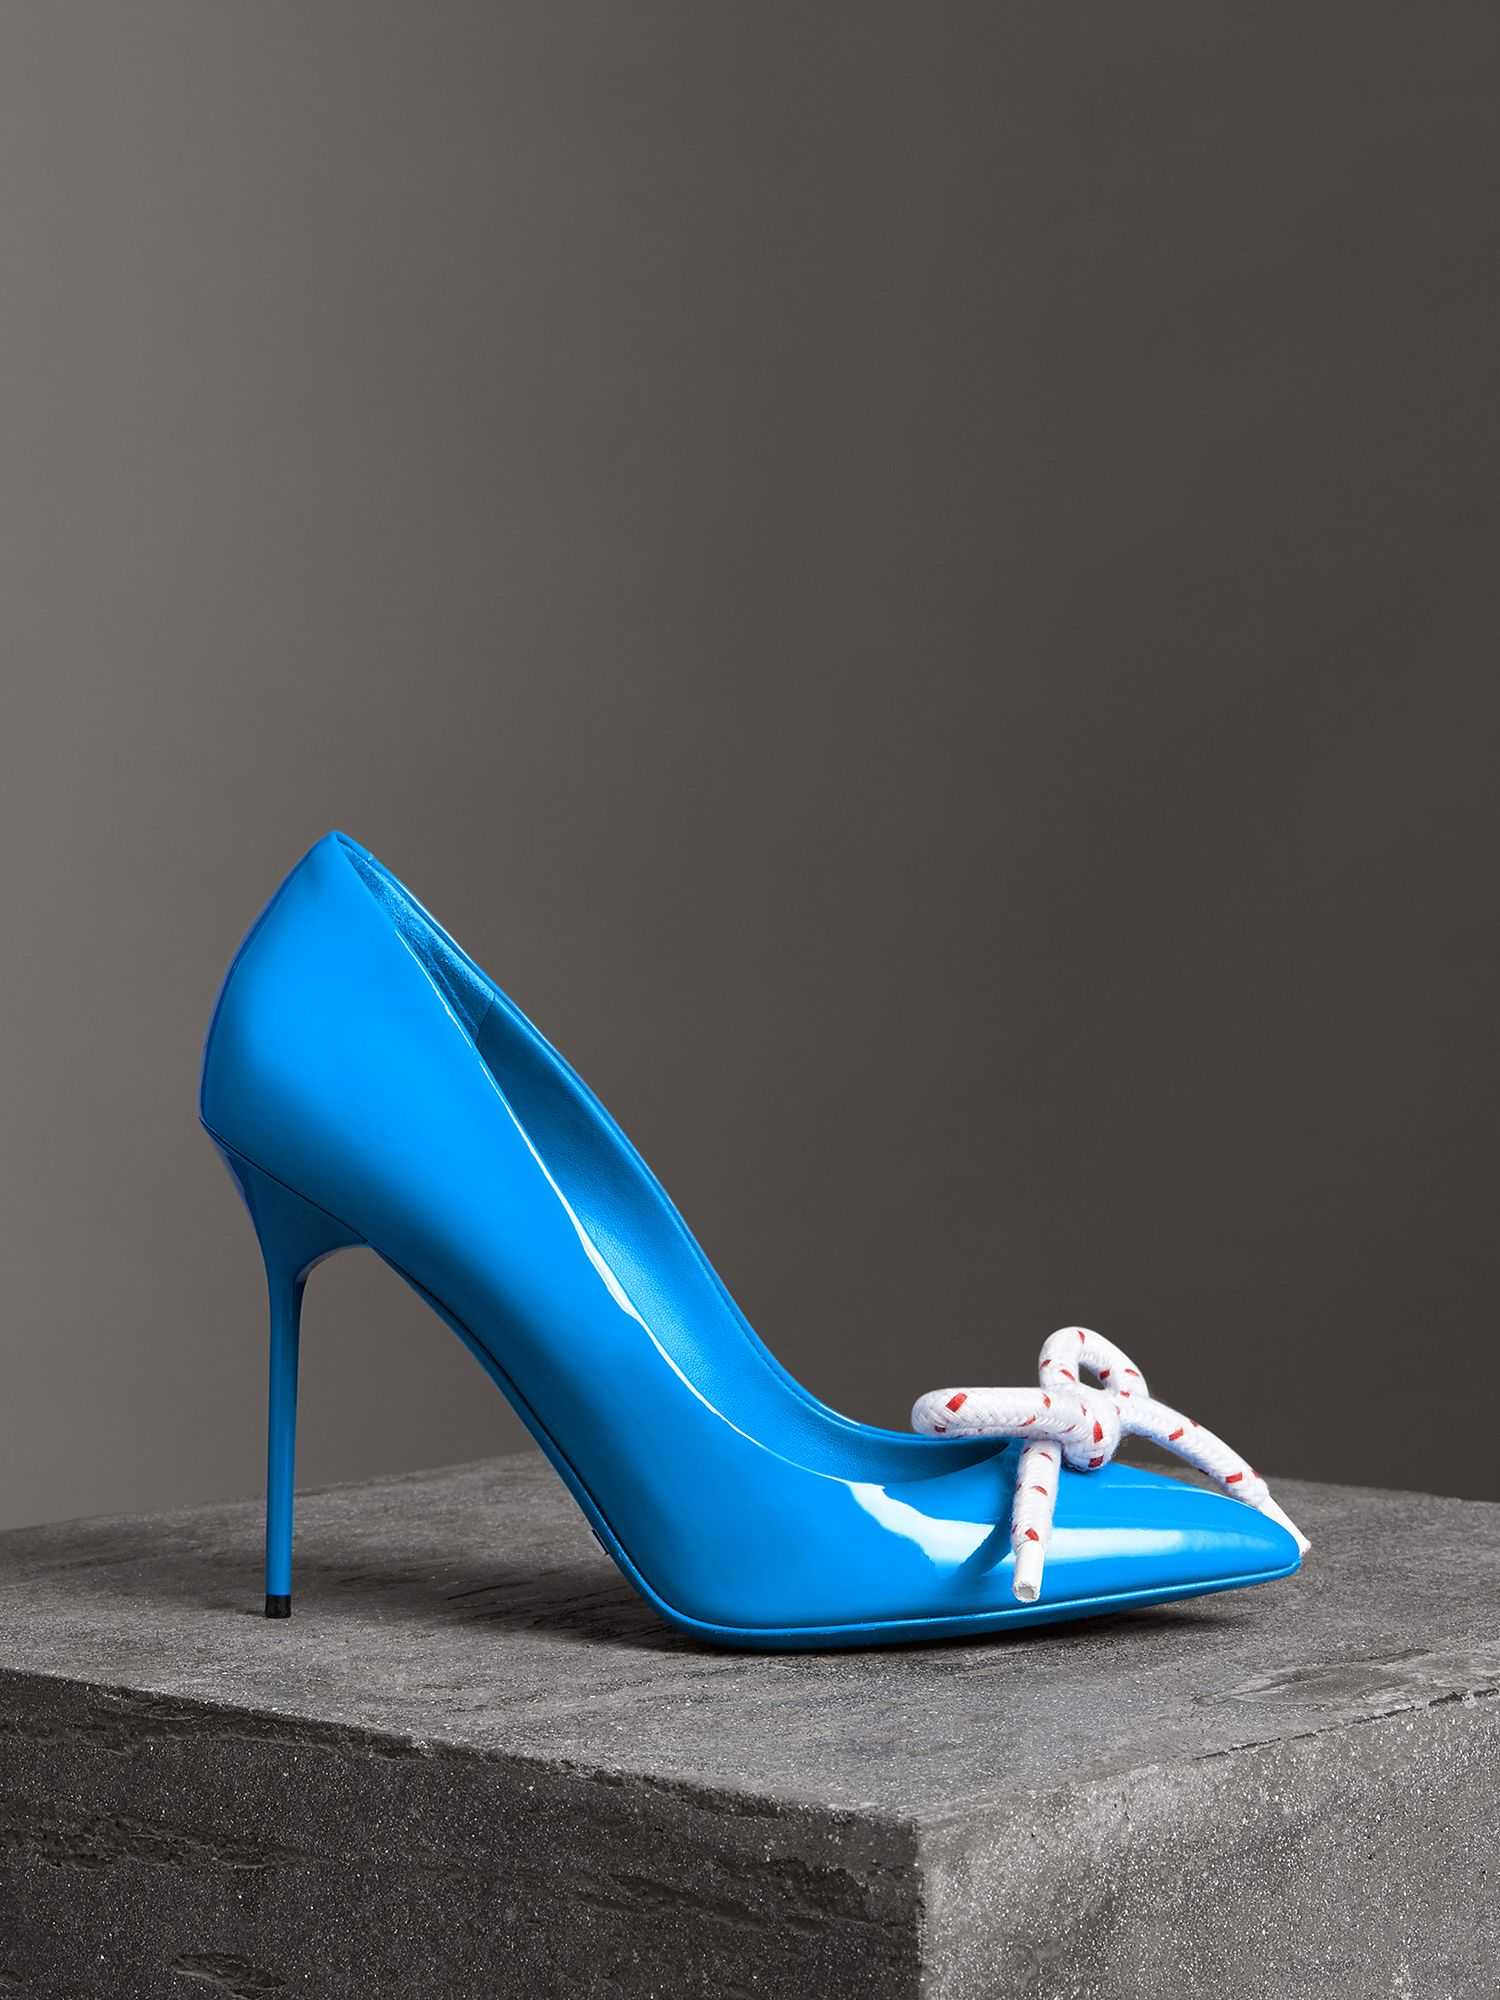 Stiletto-Pumps aus Lackleder mit Kordeldetail (Azurblau)